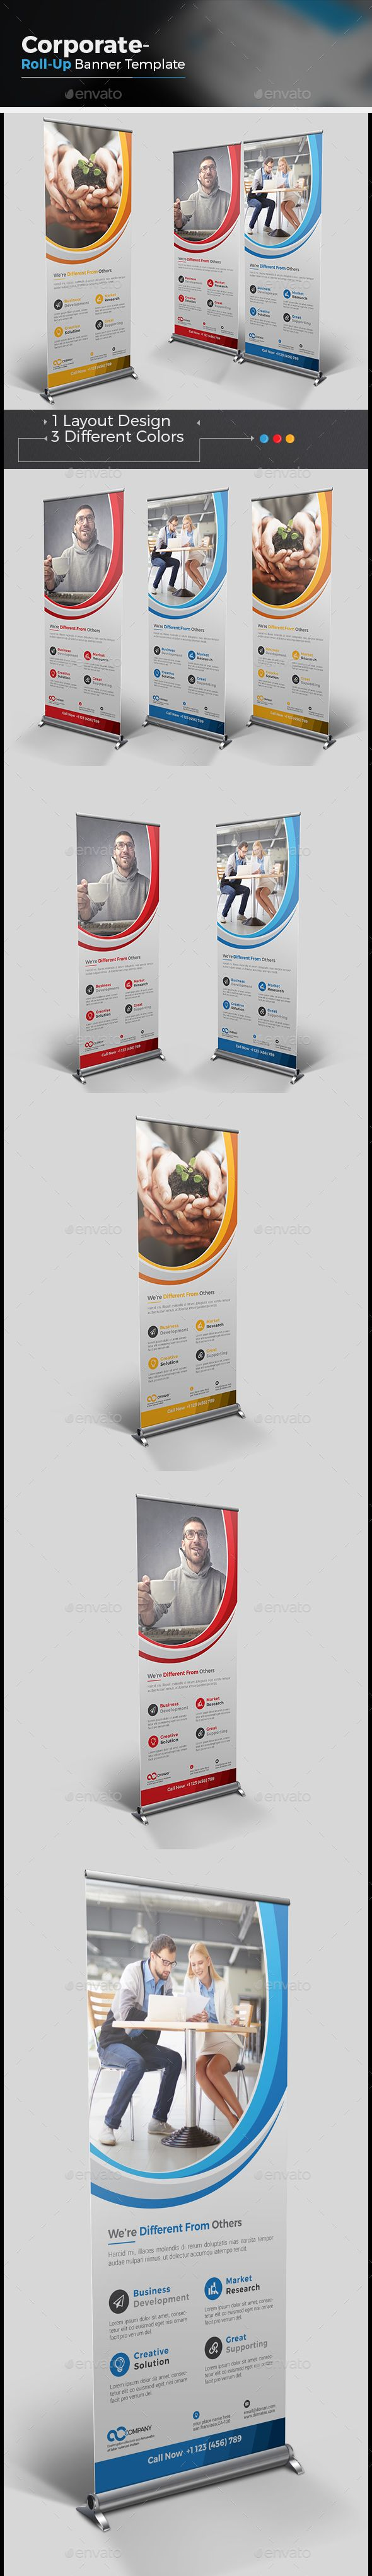 Business Roll-up Banner Template Vector EPS, AI #design Download: http://graphicriver.net/item/business-rollup-banner/14470995?ref=ksioks